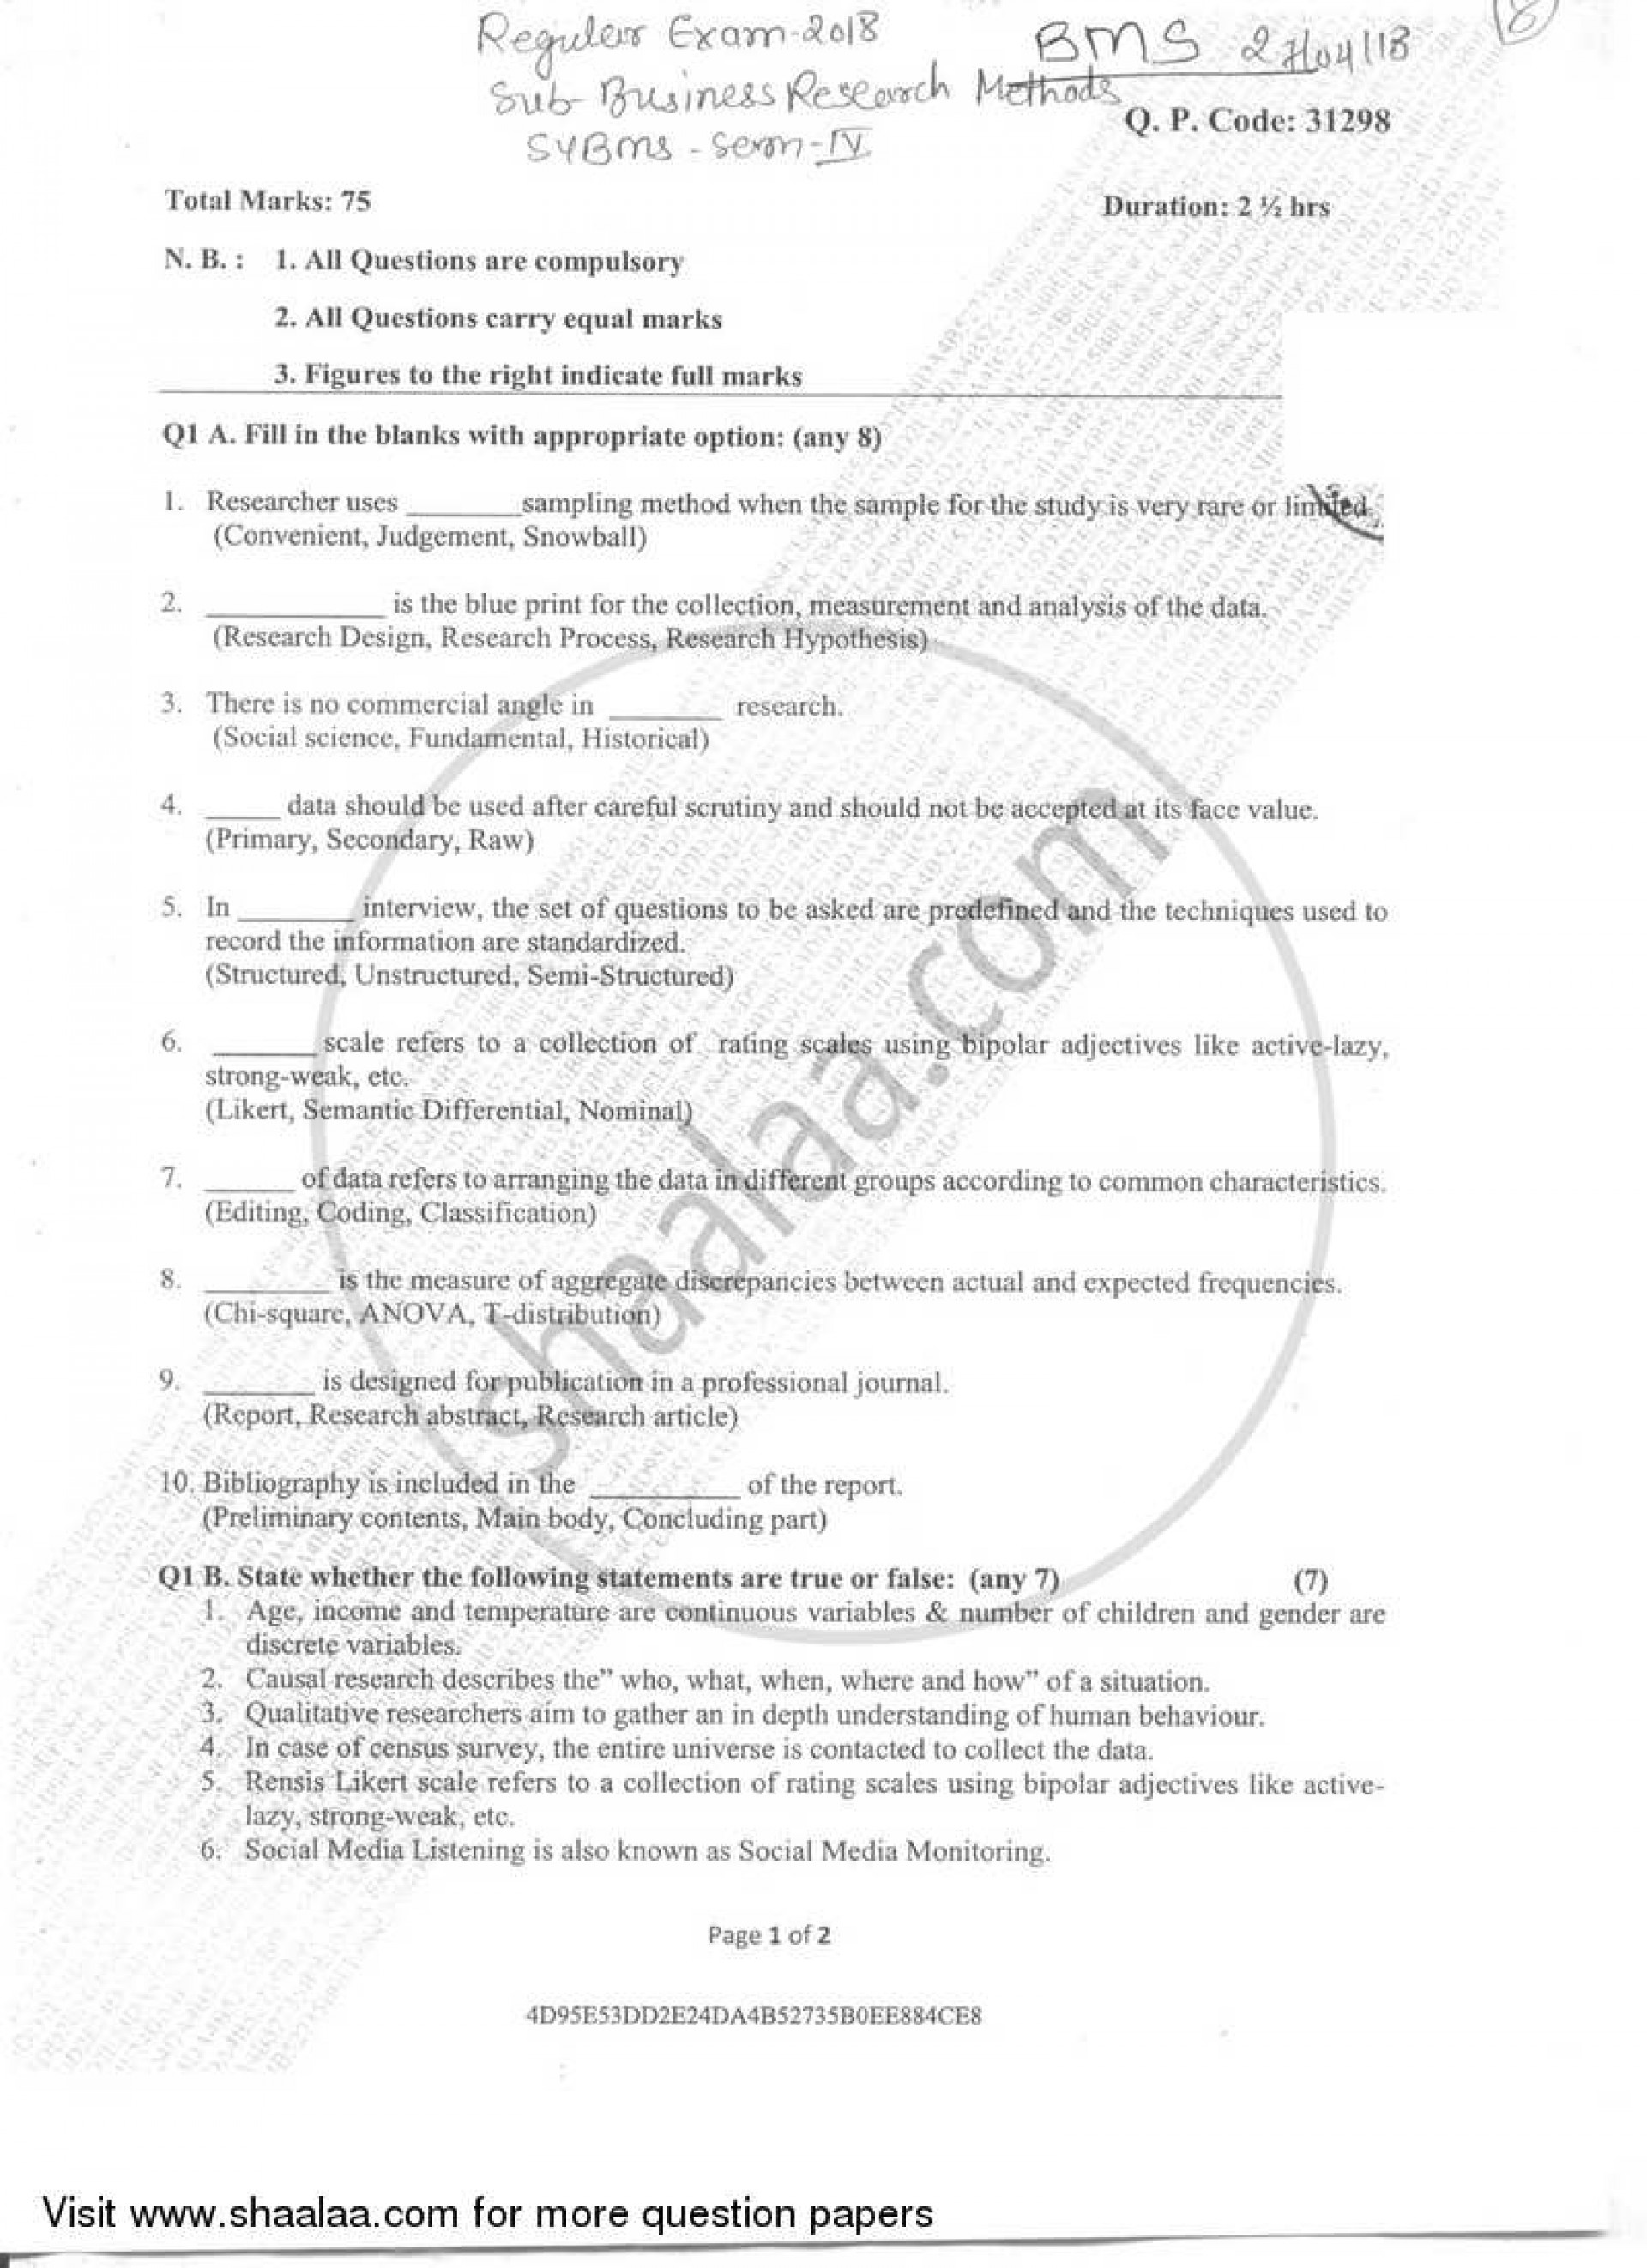 001 Business Research Methods Question Paper University Of Mumbai Bachelor Bms Semester 2018 273366f2e5ebf44fa9f053e9300512123 Stupendous 2017 1920